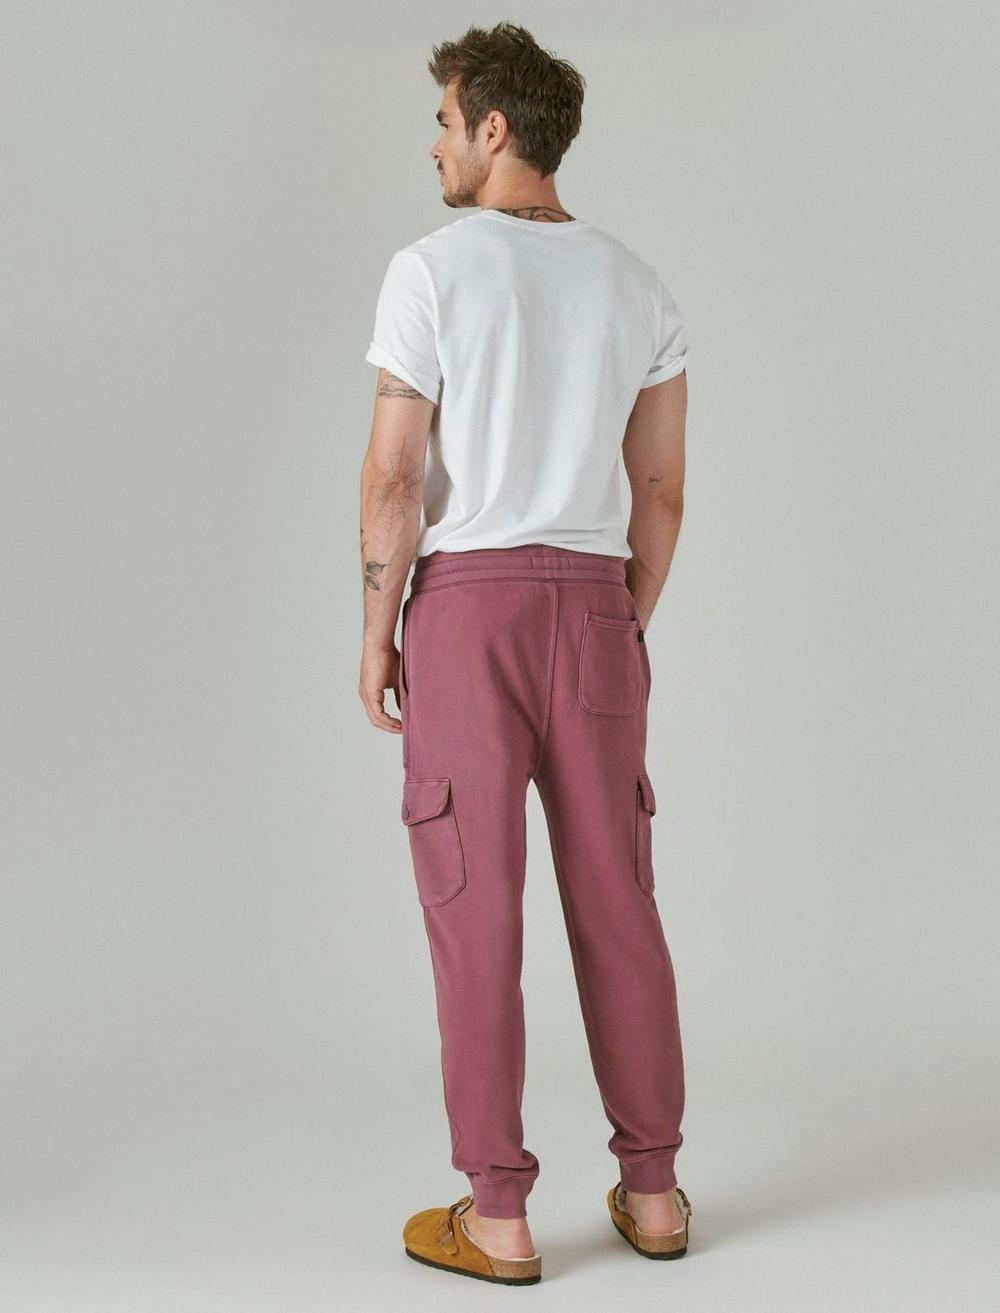 SUEDED TERRY CARGO JOGGER, image 3